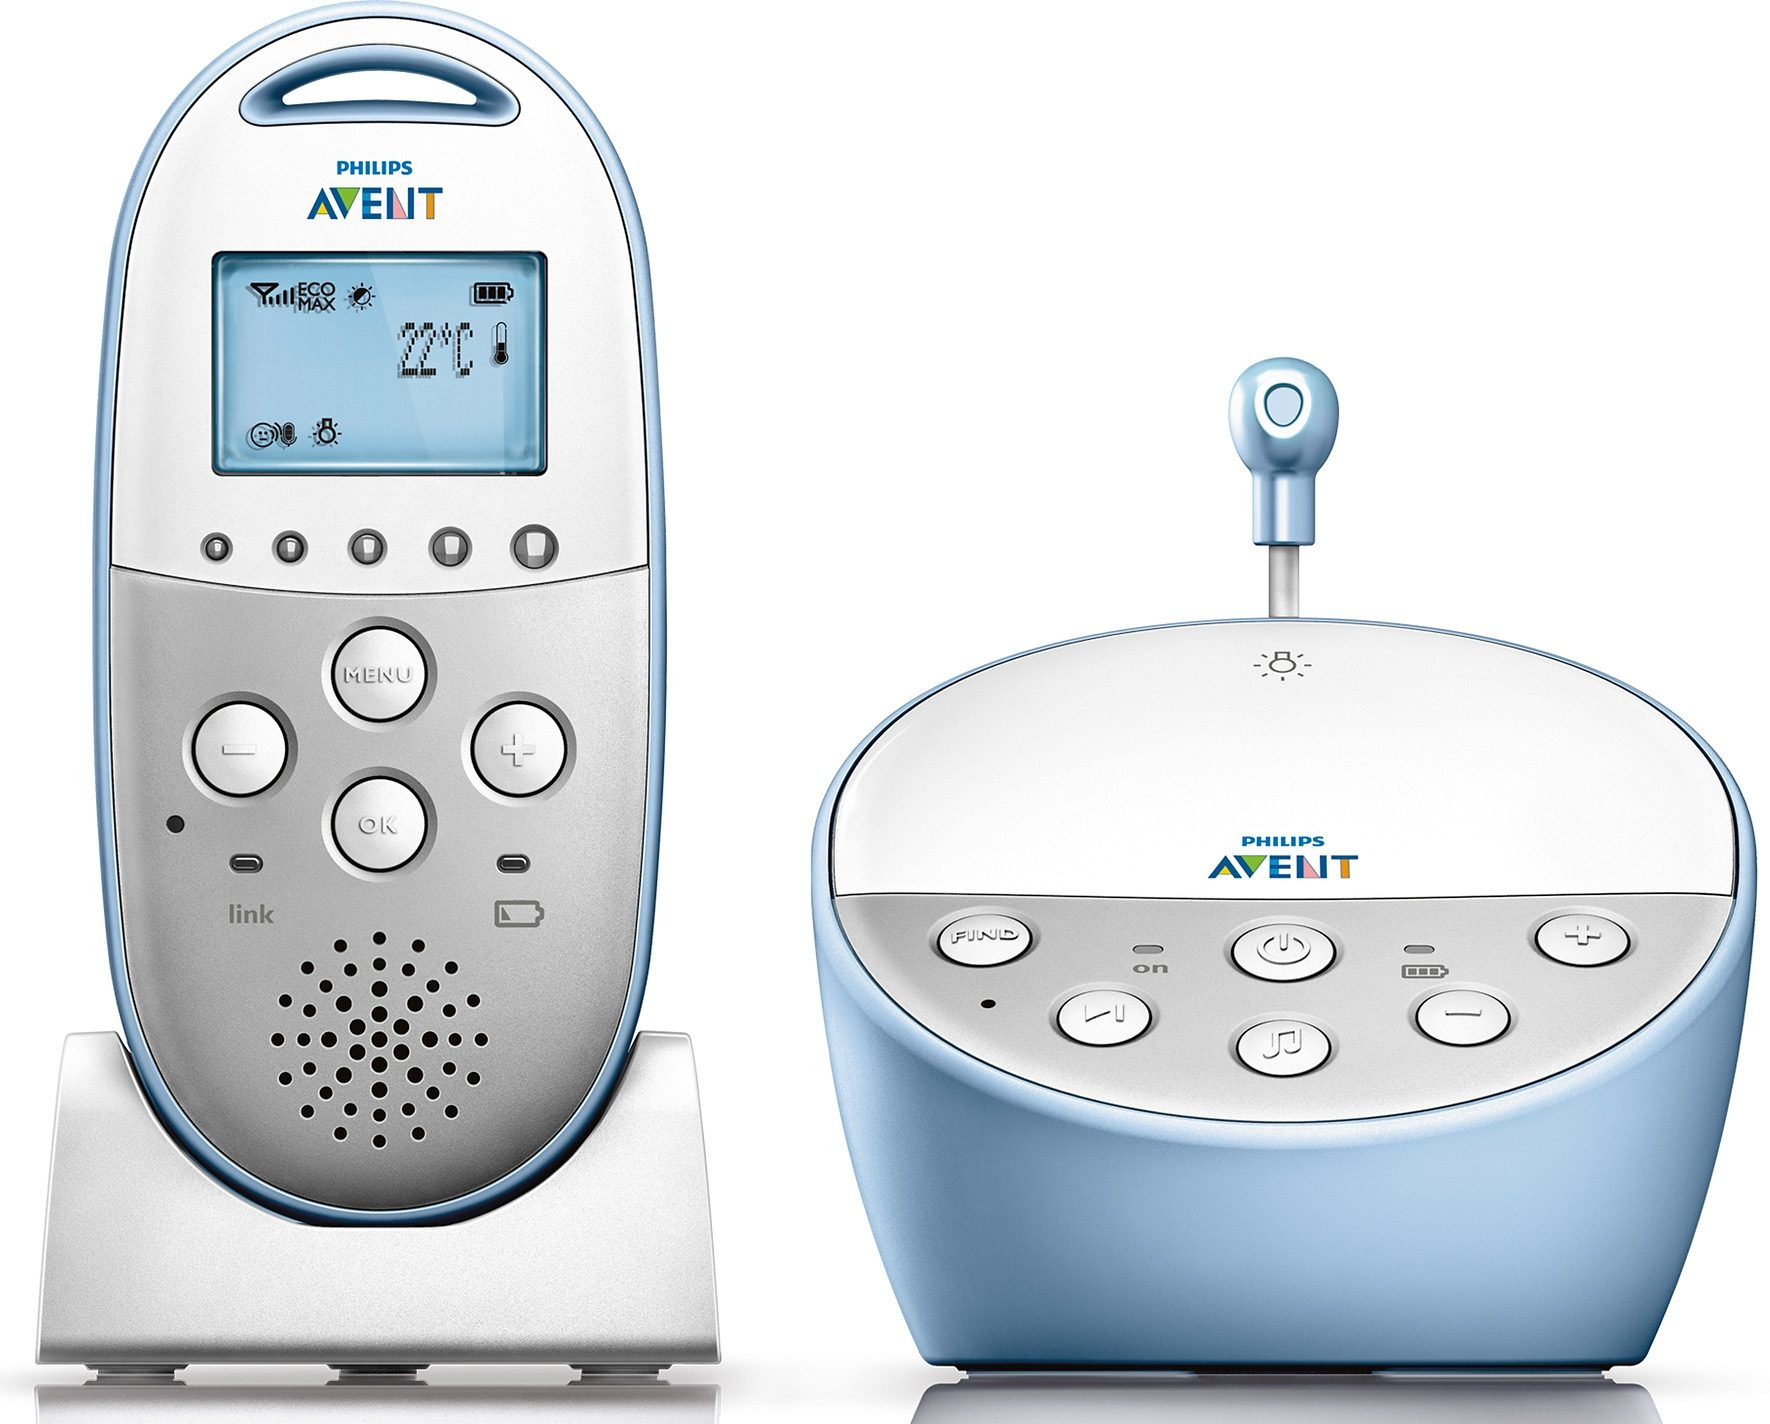 Philips AVENT Babyphone SCD570/00, mit Smart Eco Mode